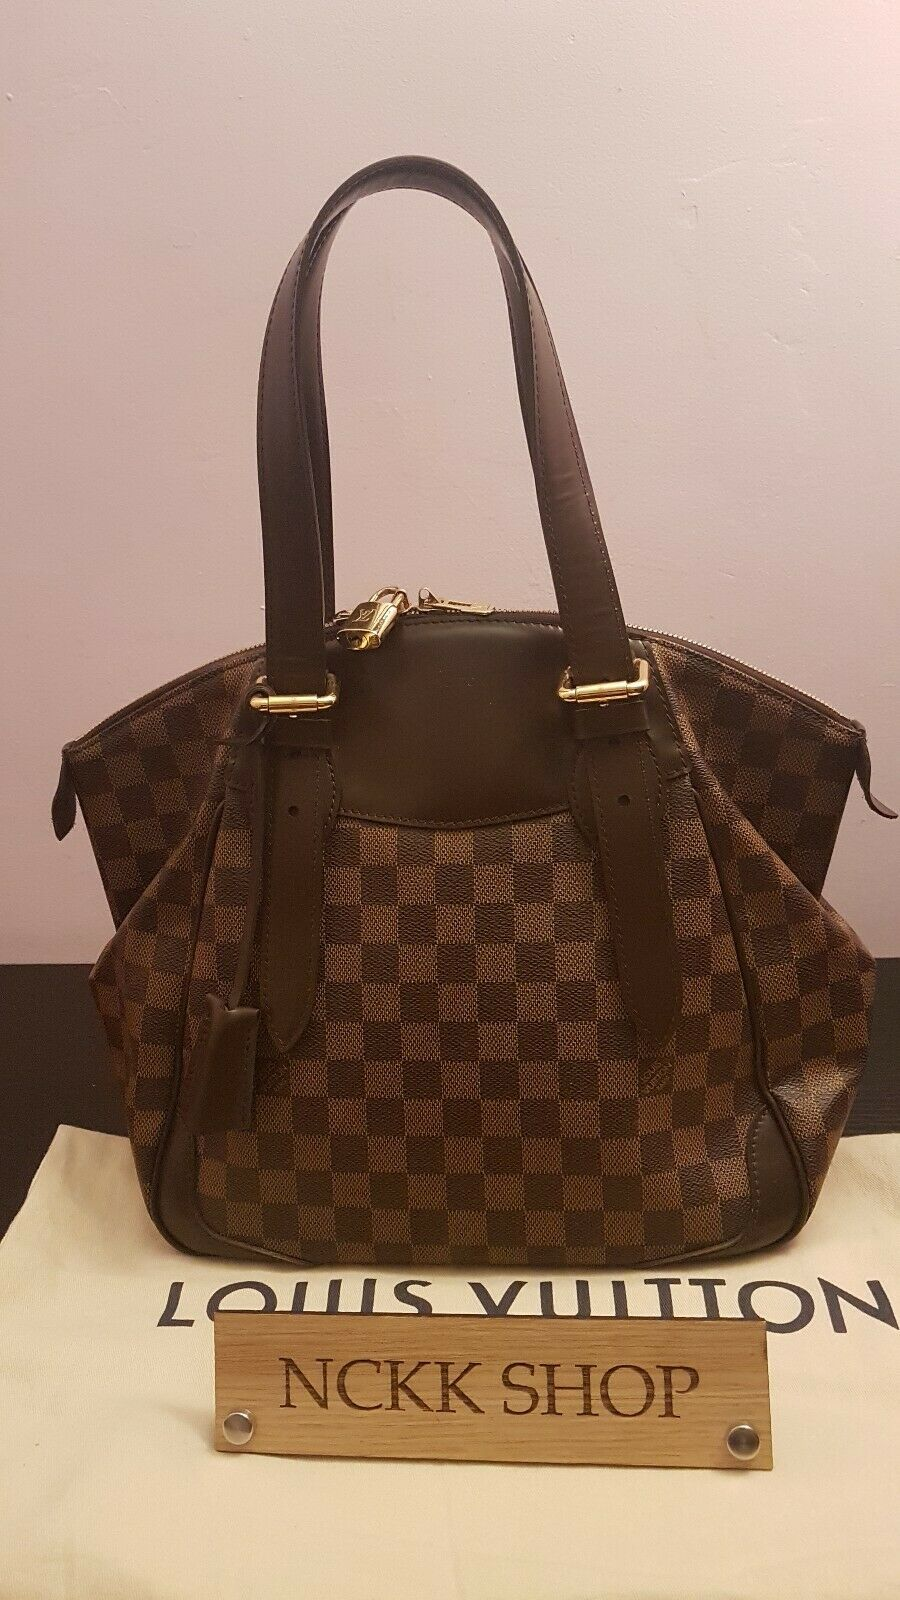 Authentic Louis Vuitton Verona MM Damier Ebene Canvas Schultertasche - 1.045.11,Kaufpreis 1,05,datum 01.07.2020 22:12:38,Website ebay.de